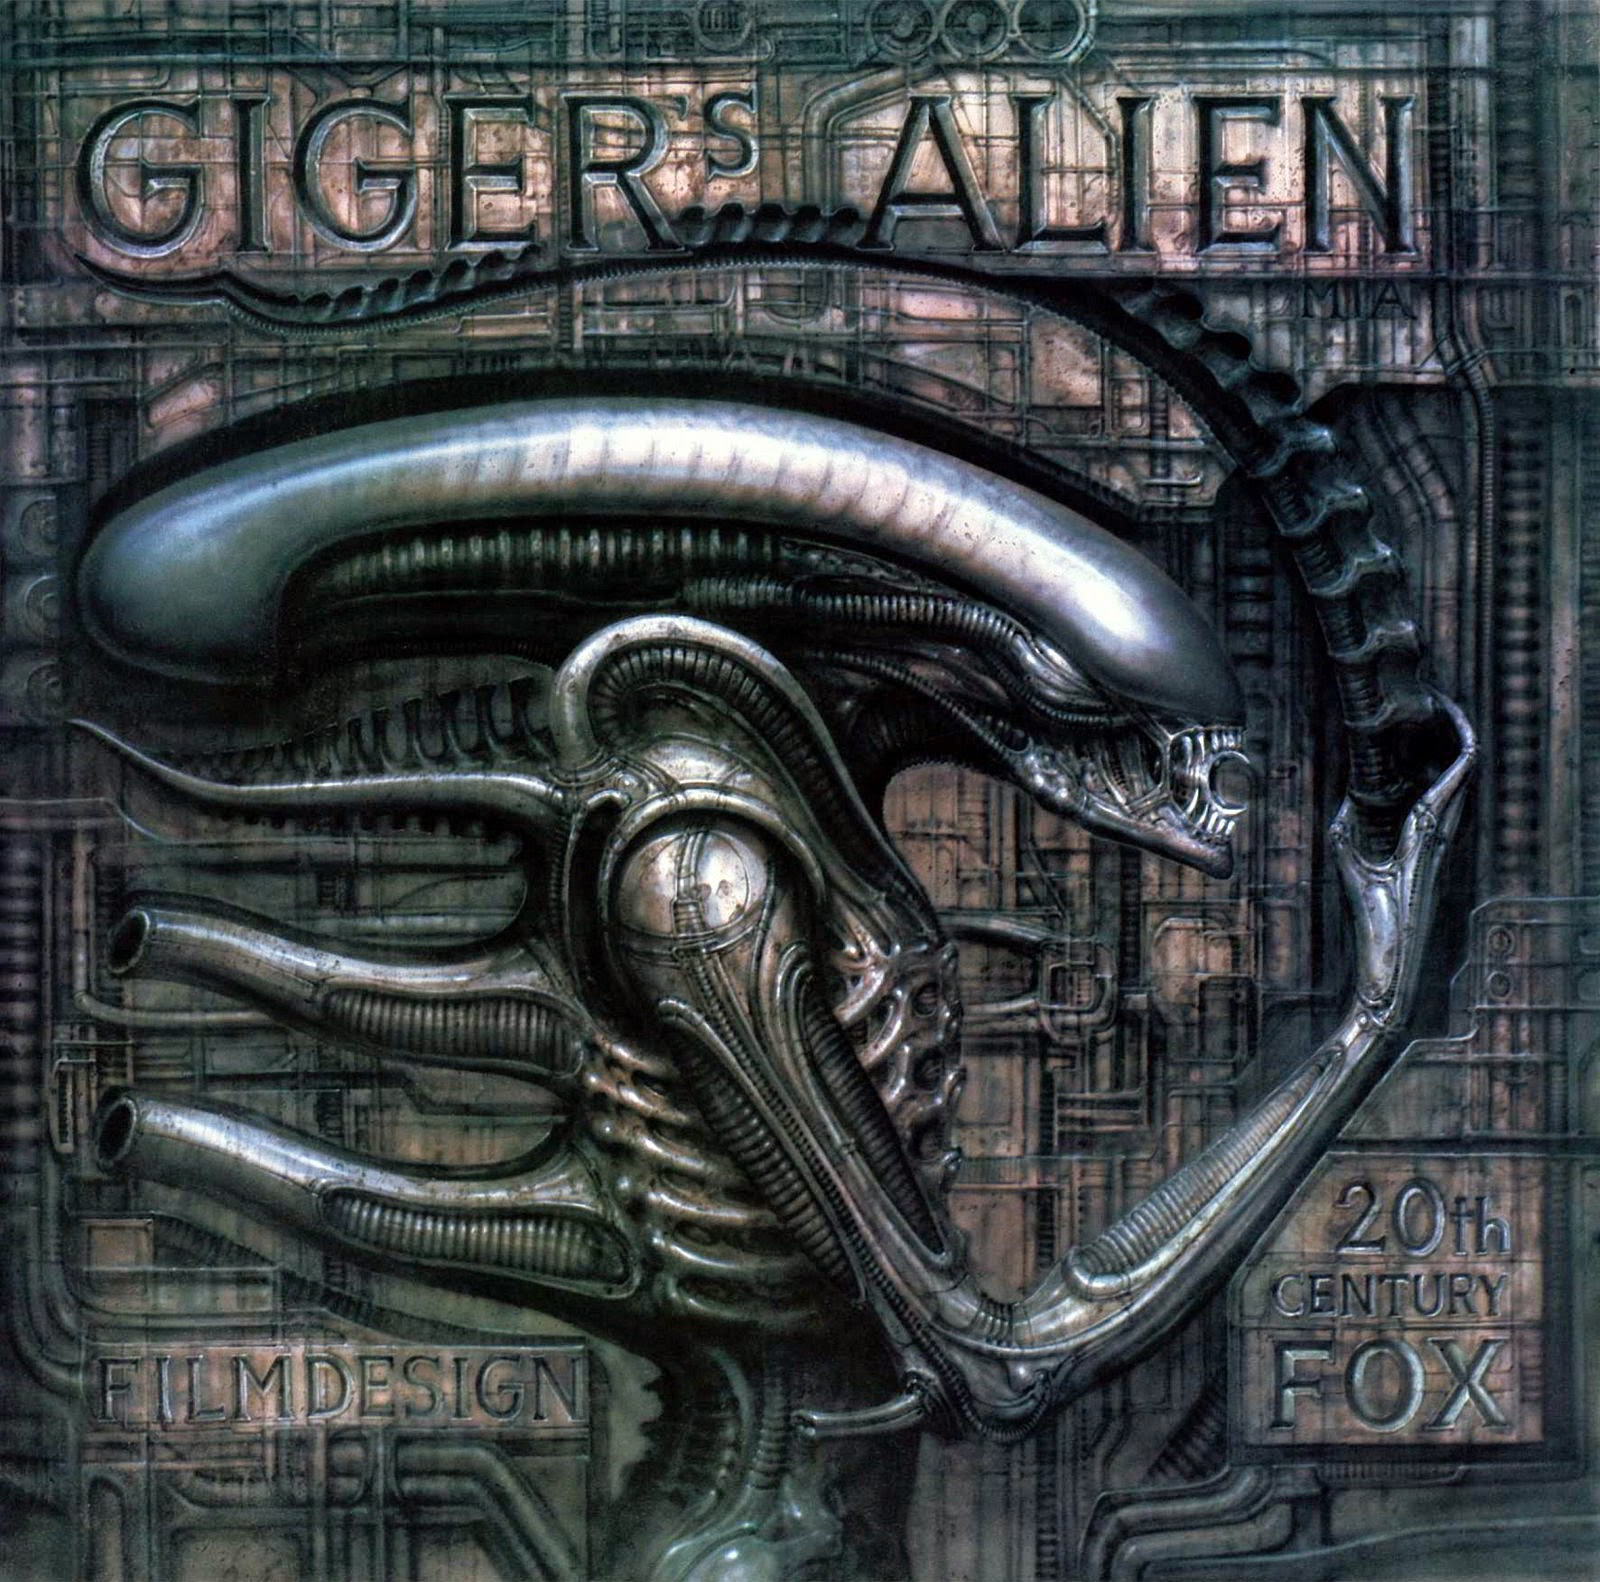 gigers alien art